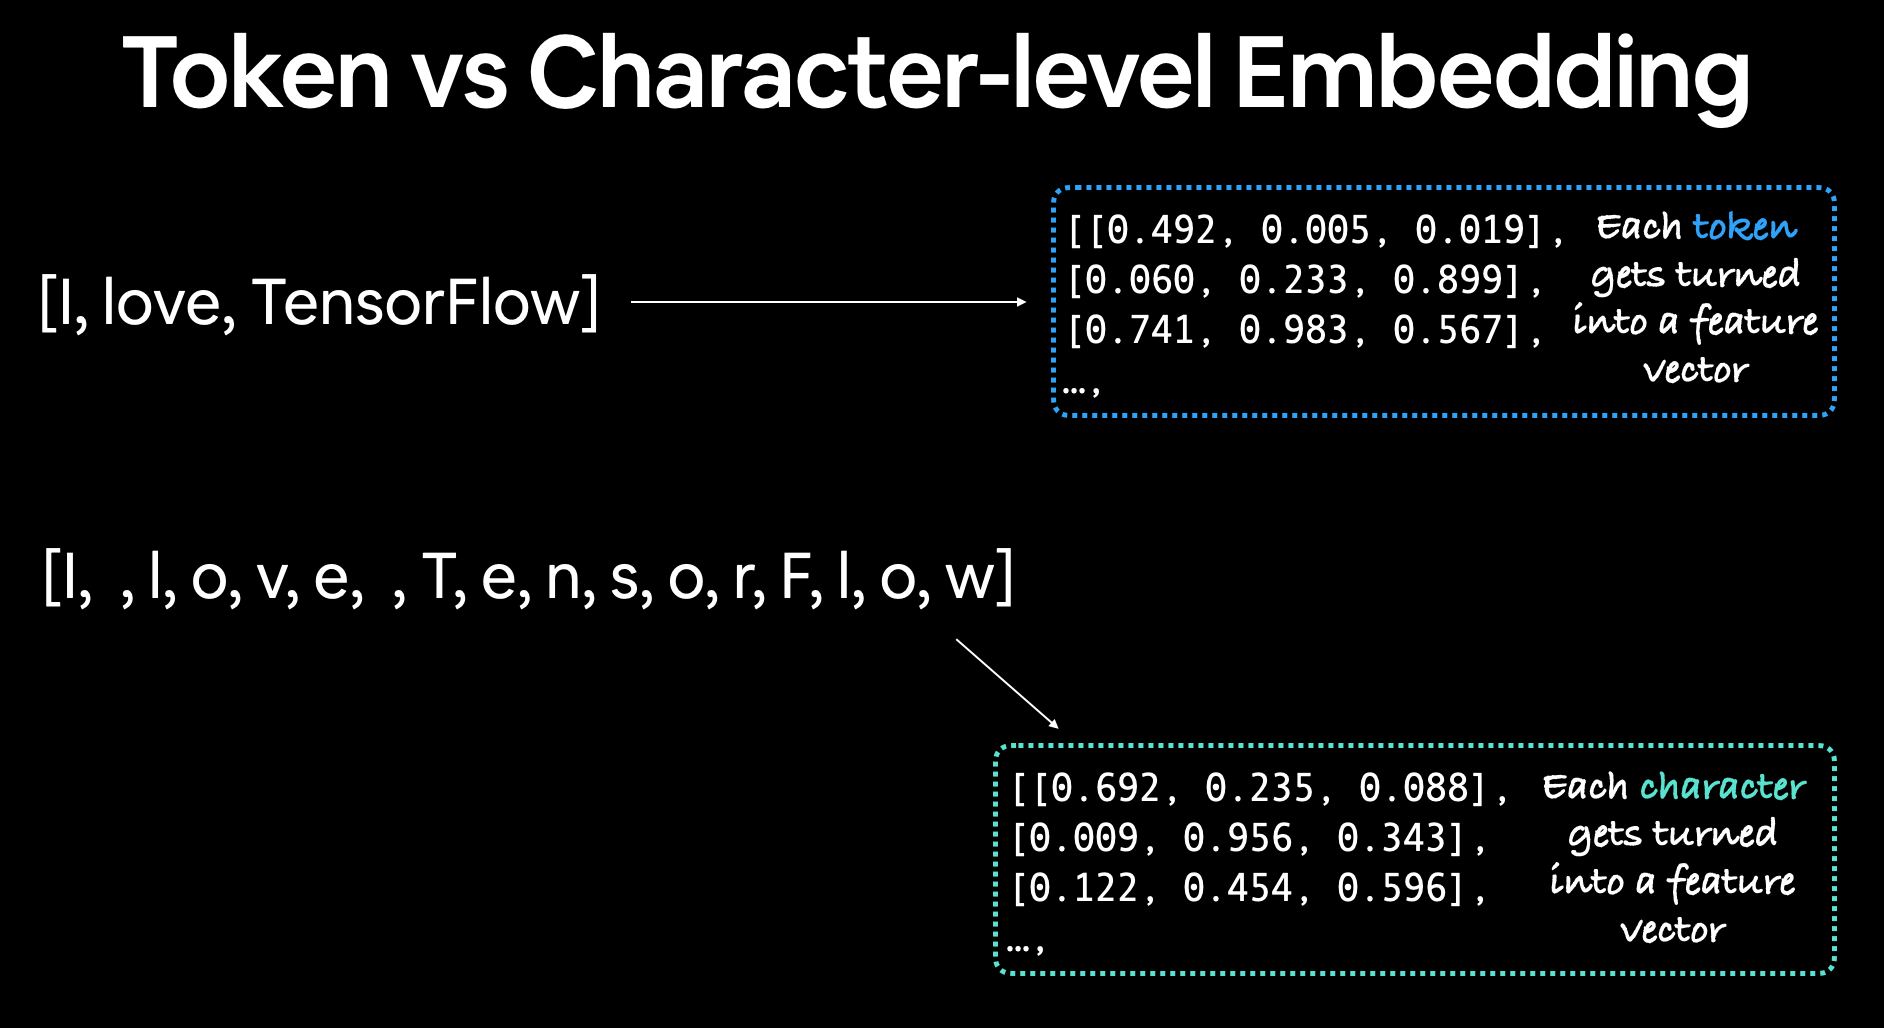 example of difference between token level and character level embeddings